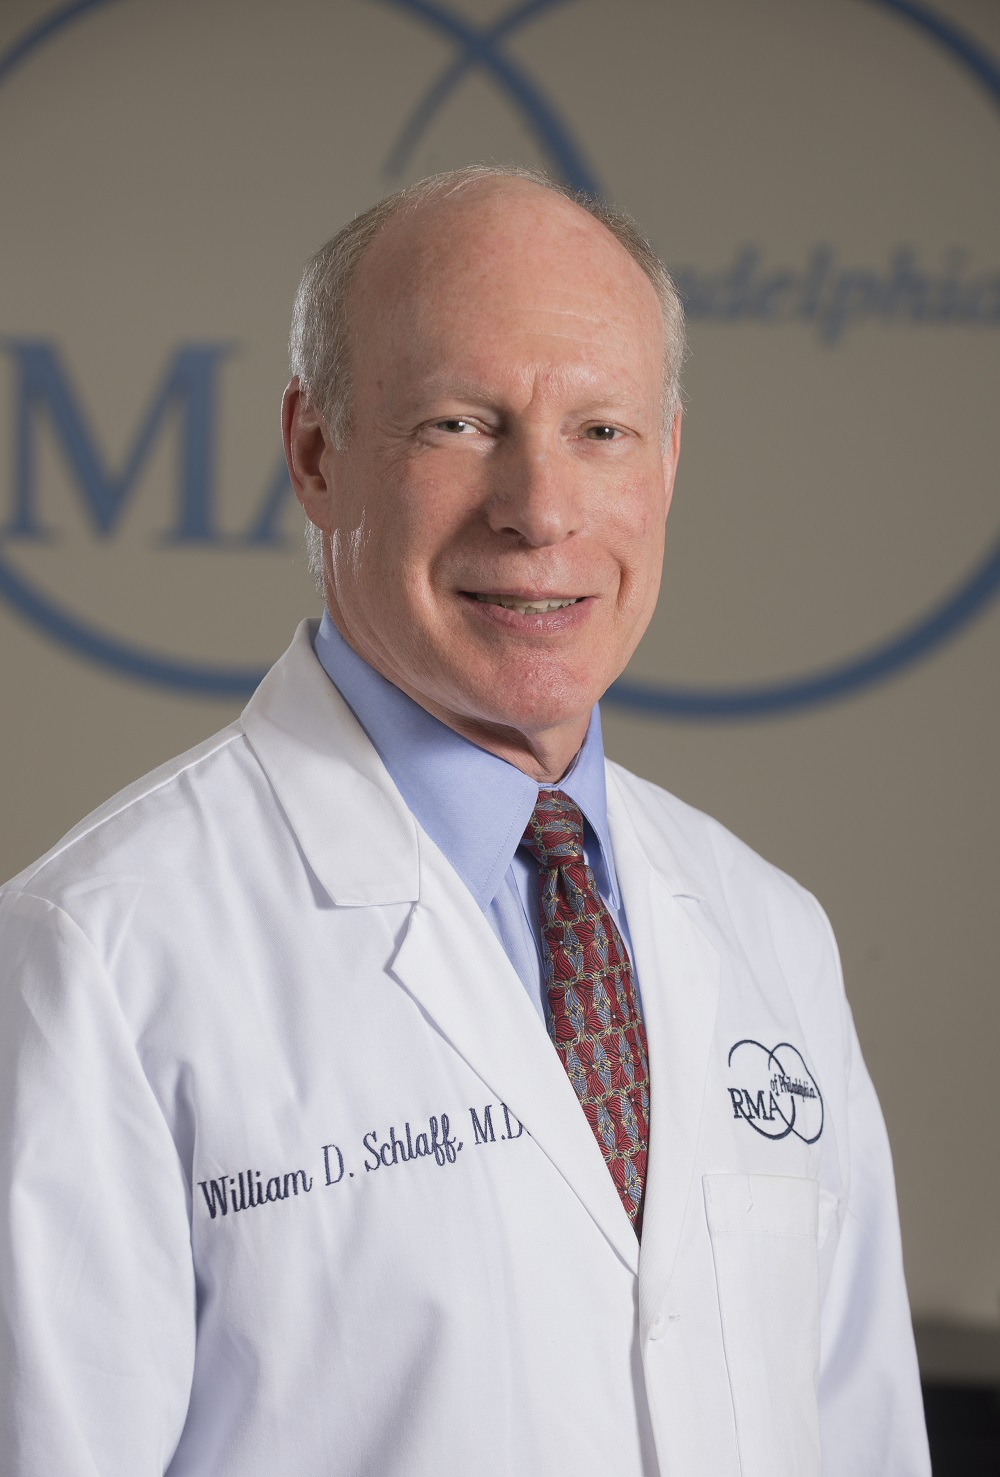 William D Schlaff, MD